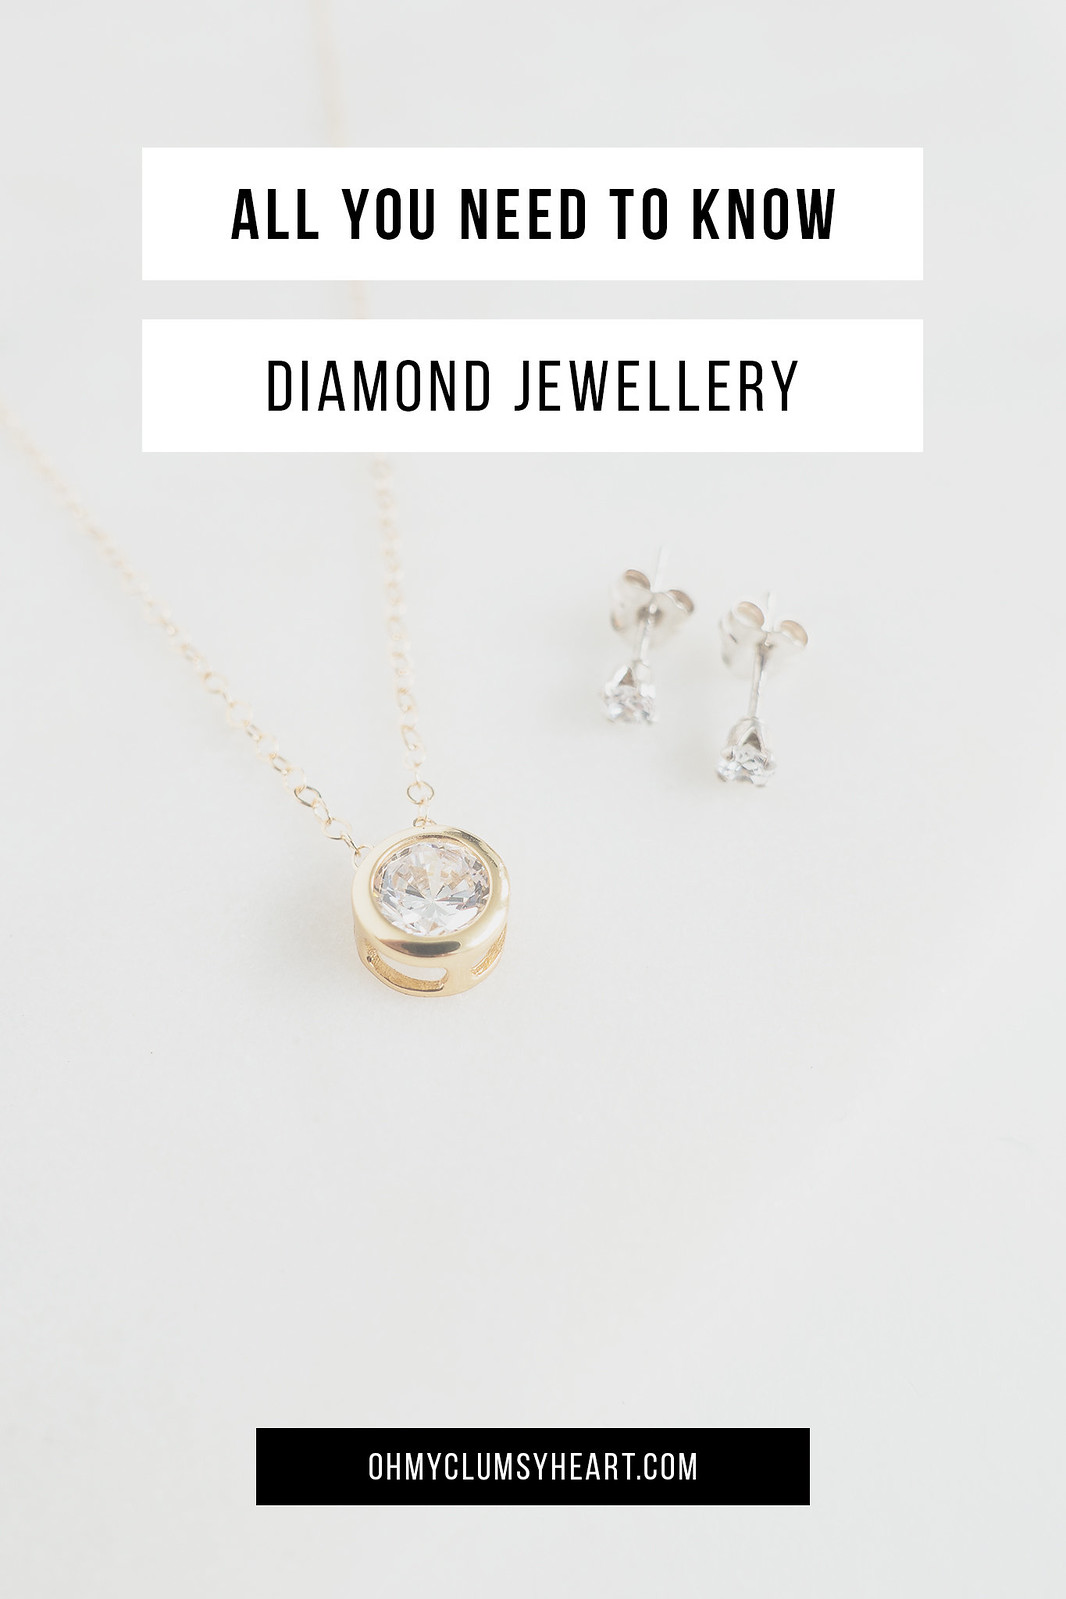 All You Need To Know: Diamond Jewellery